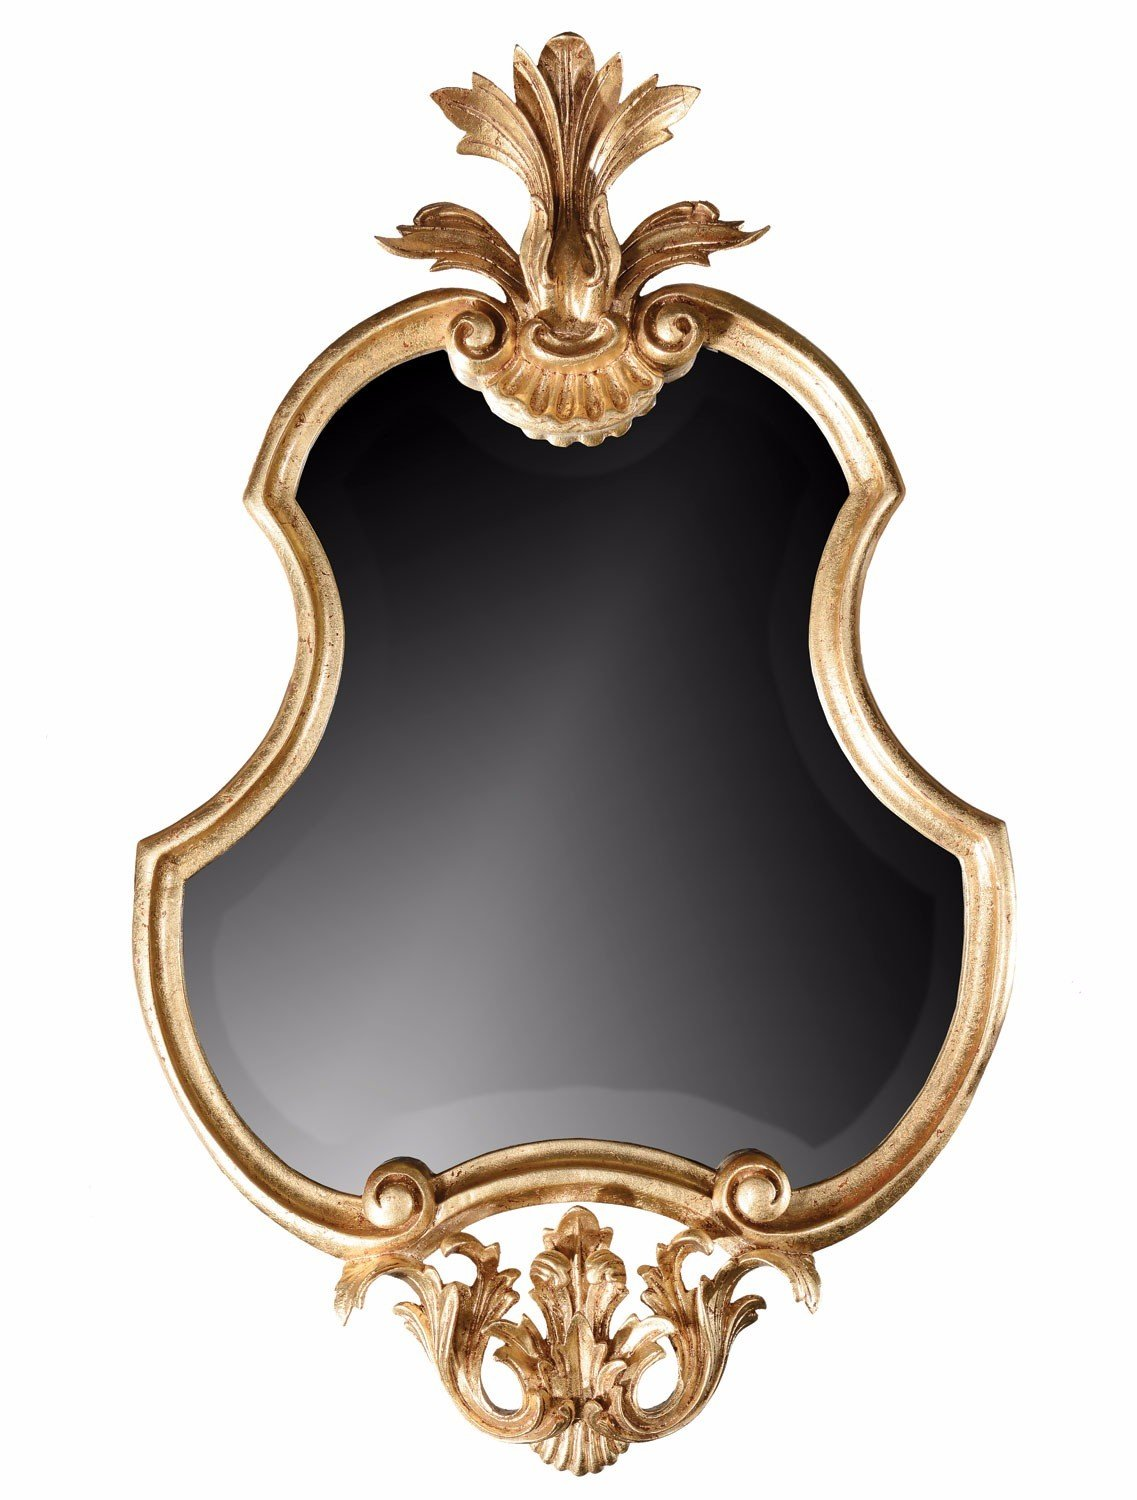 Hand carved French style gilded mirror - 65cm